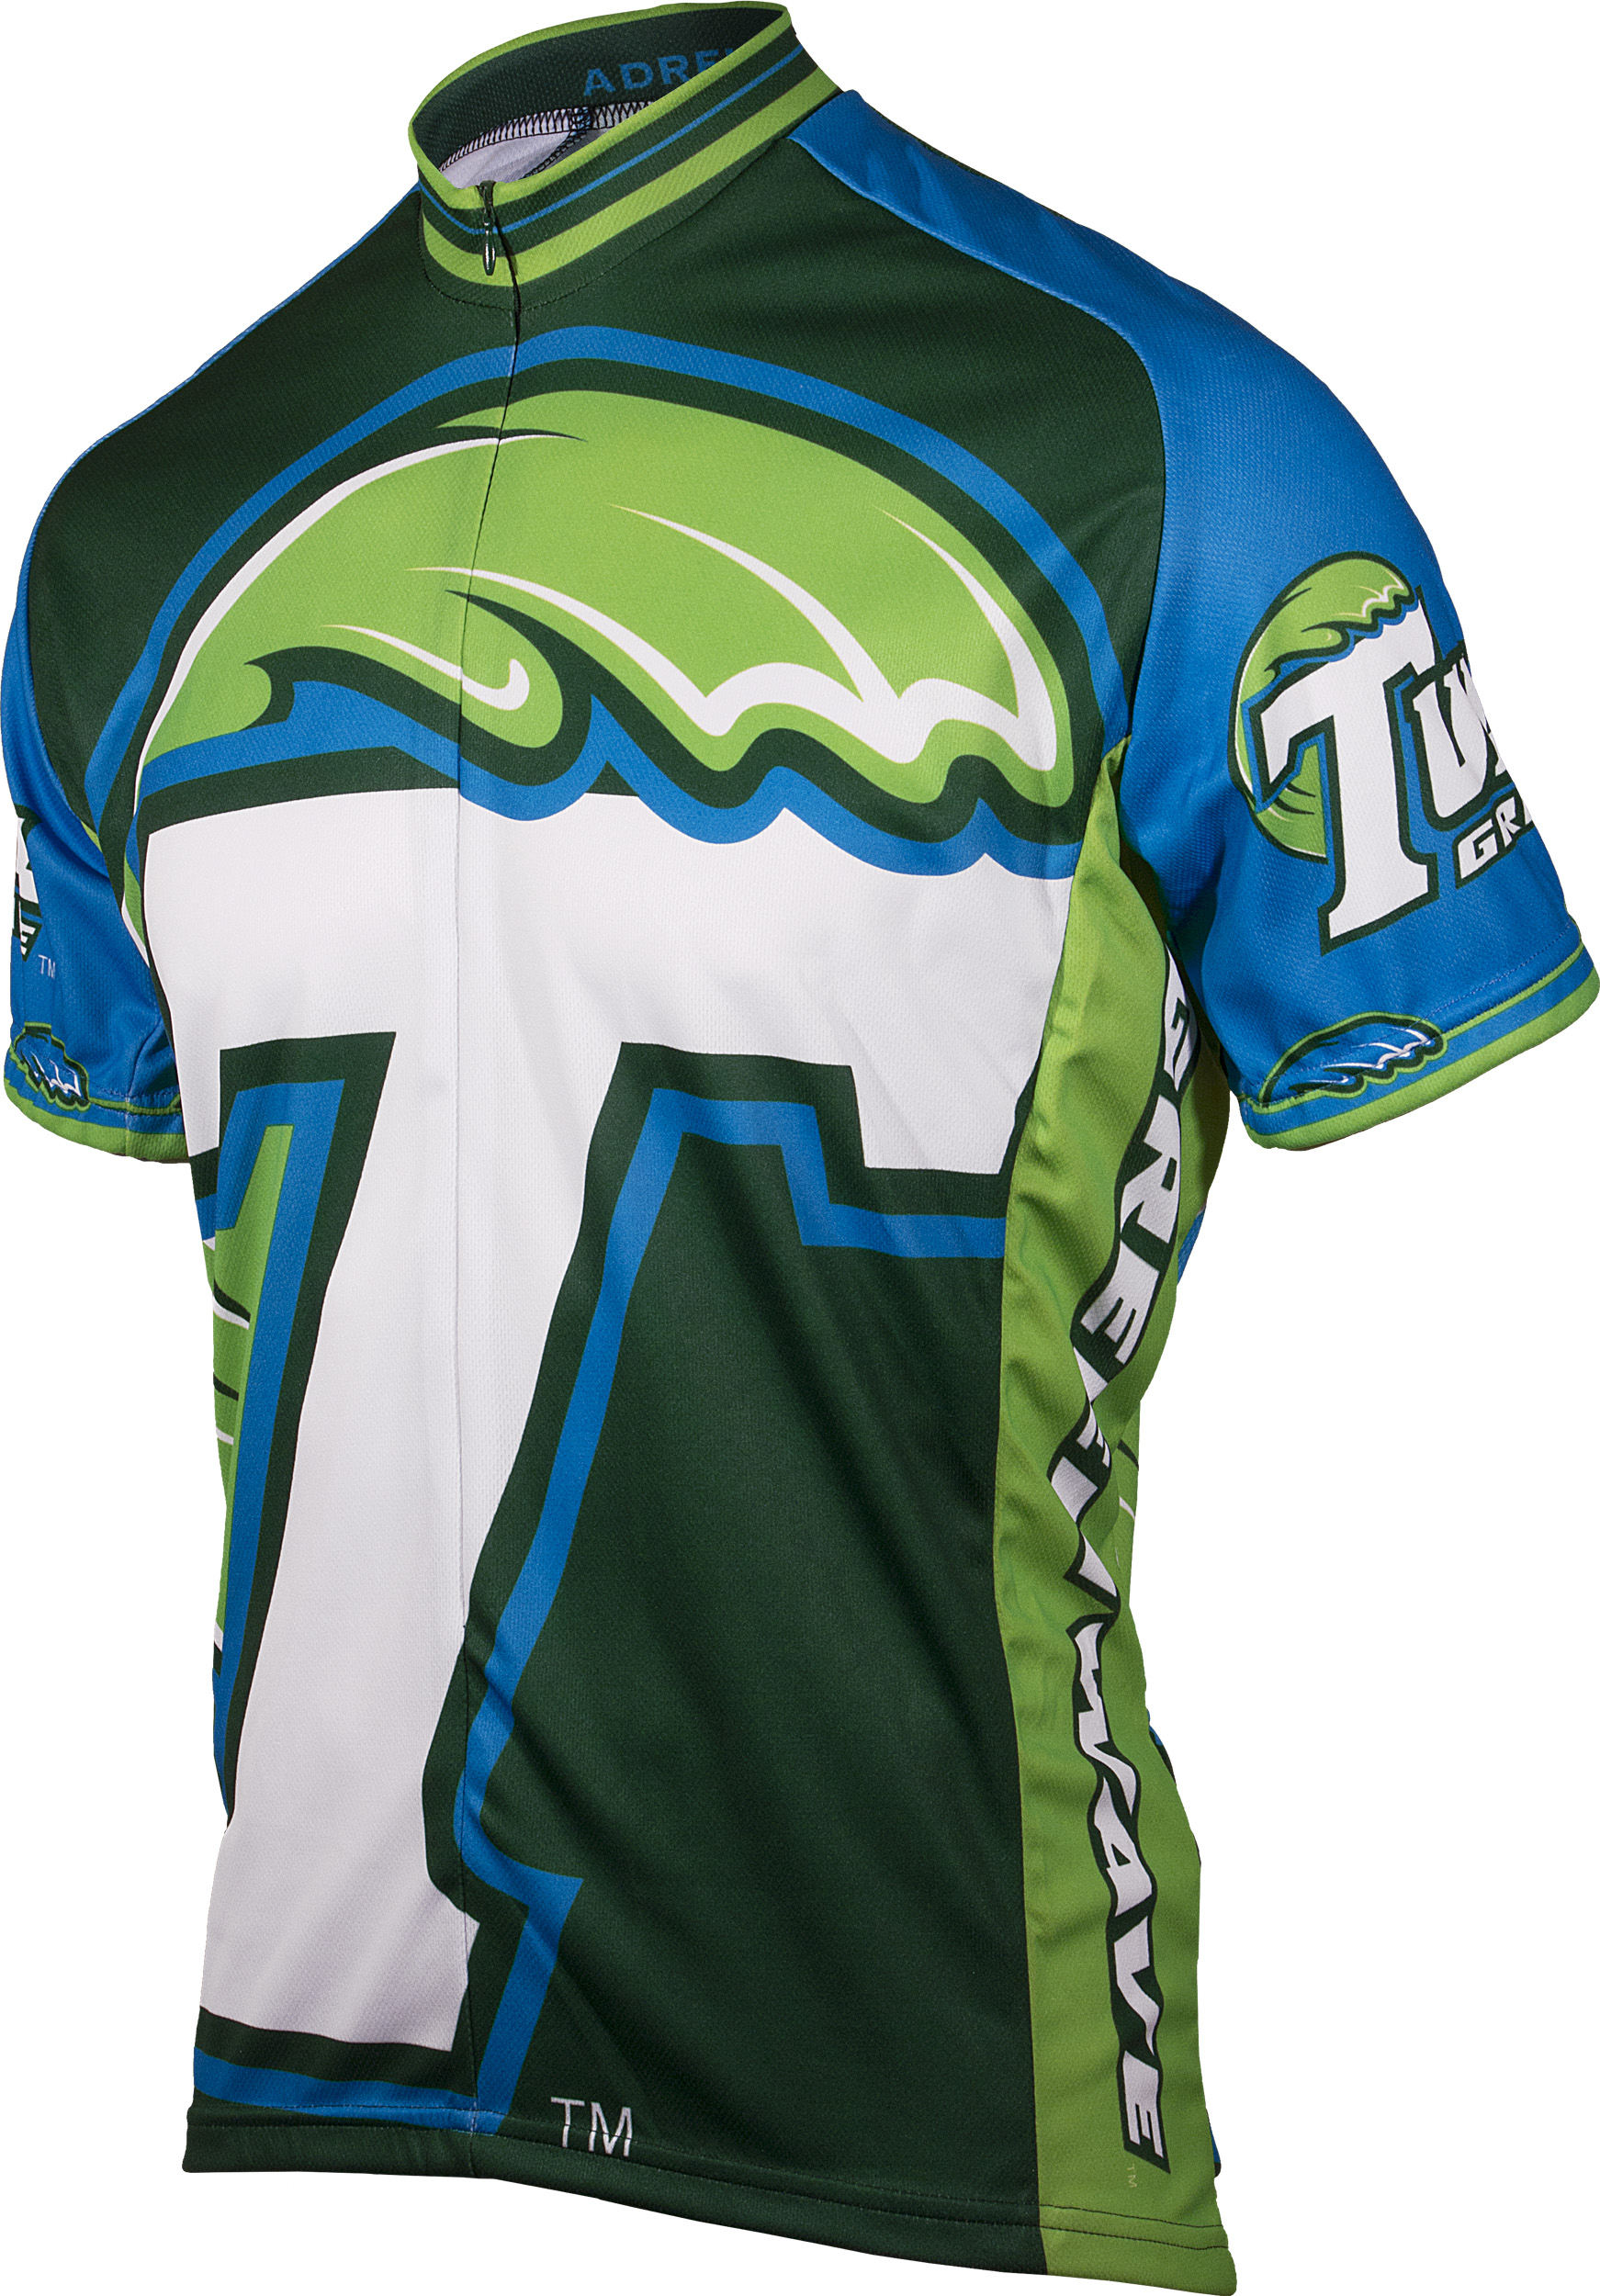 Tulane University Cycling Jersey